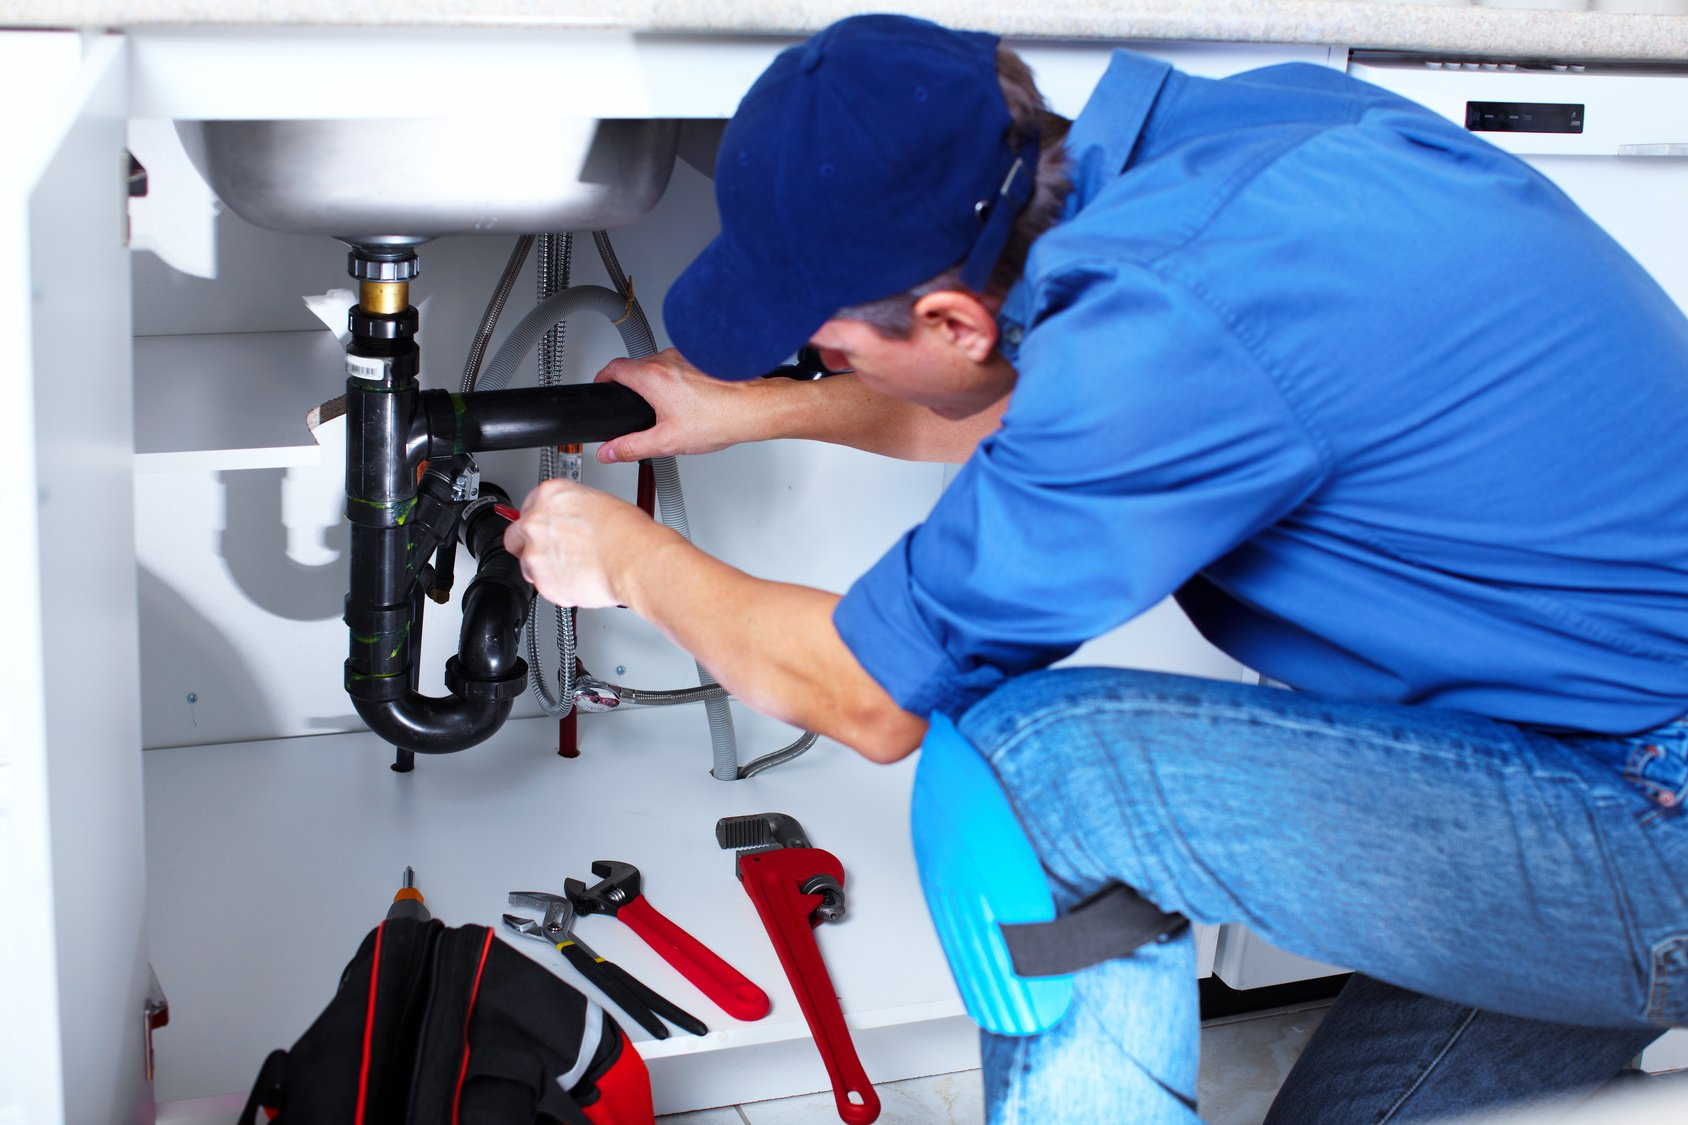 handyman services Handyman Services and Remodeling Sink repair plumber